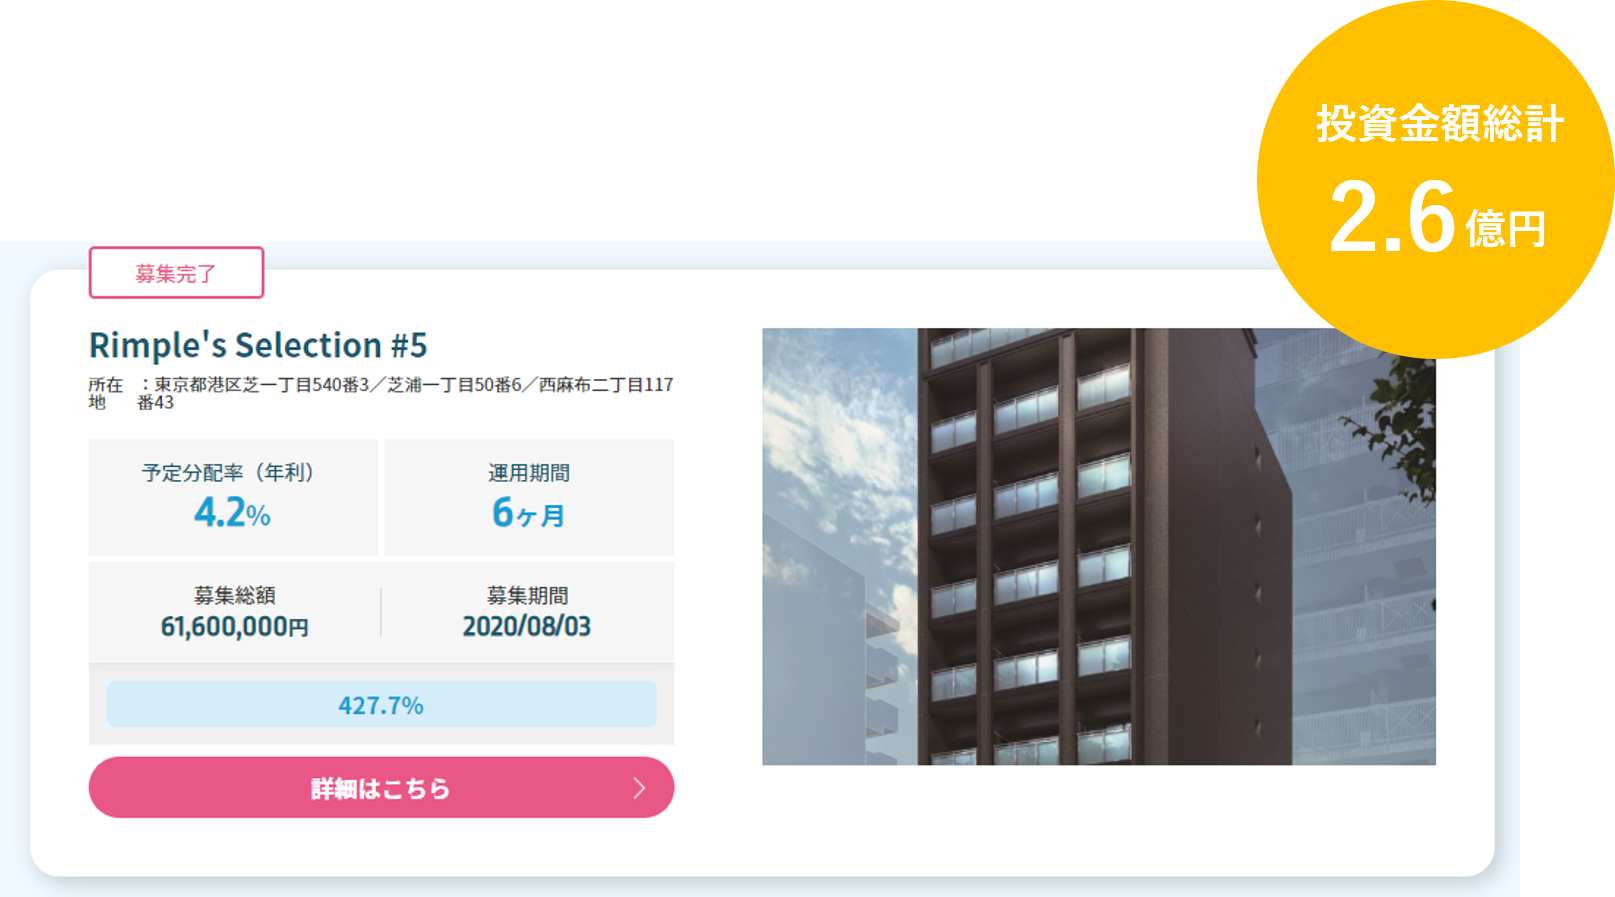 Rimple's Selection#5募集総額400%を超える2.6億円の応募